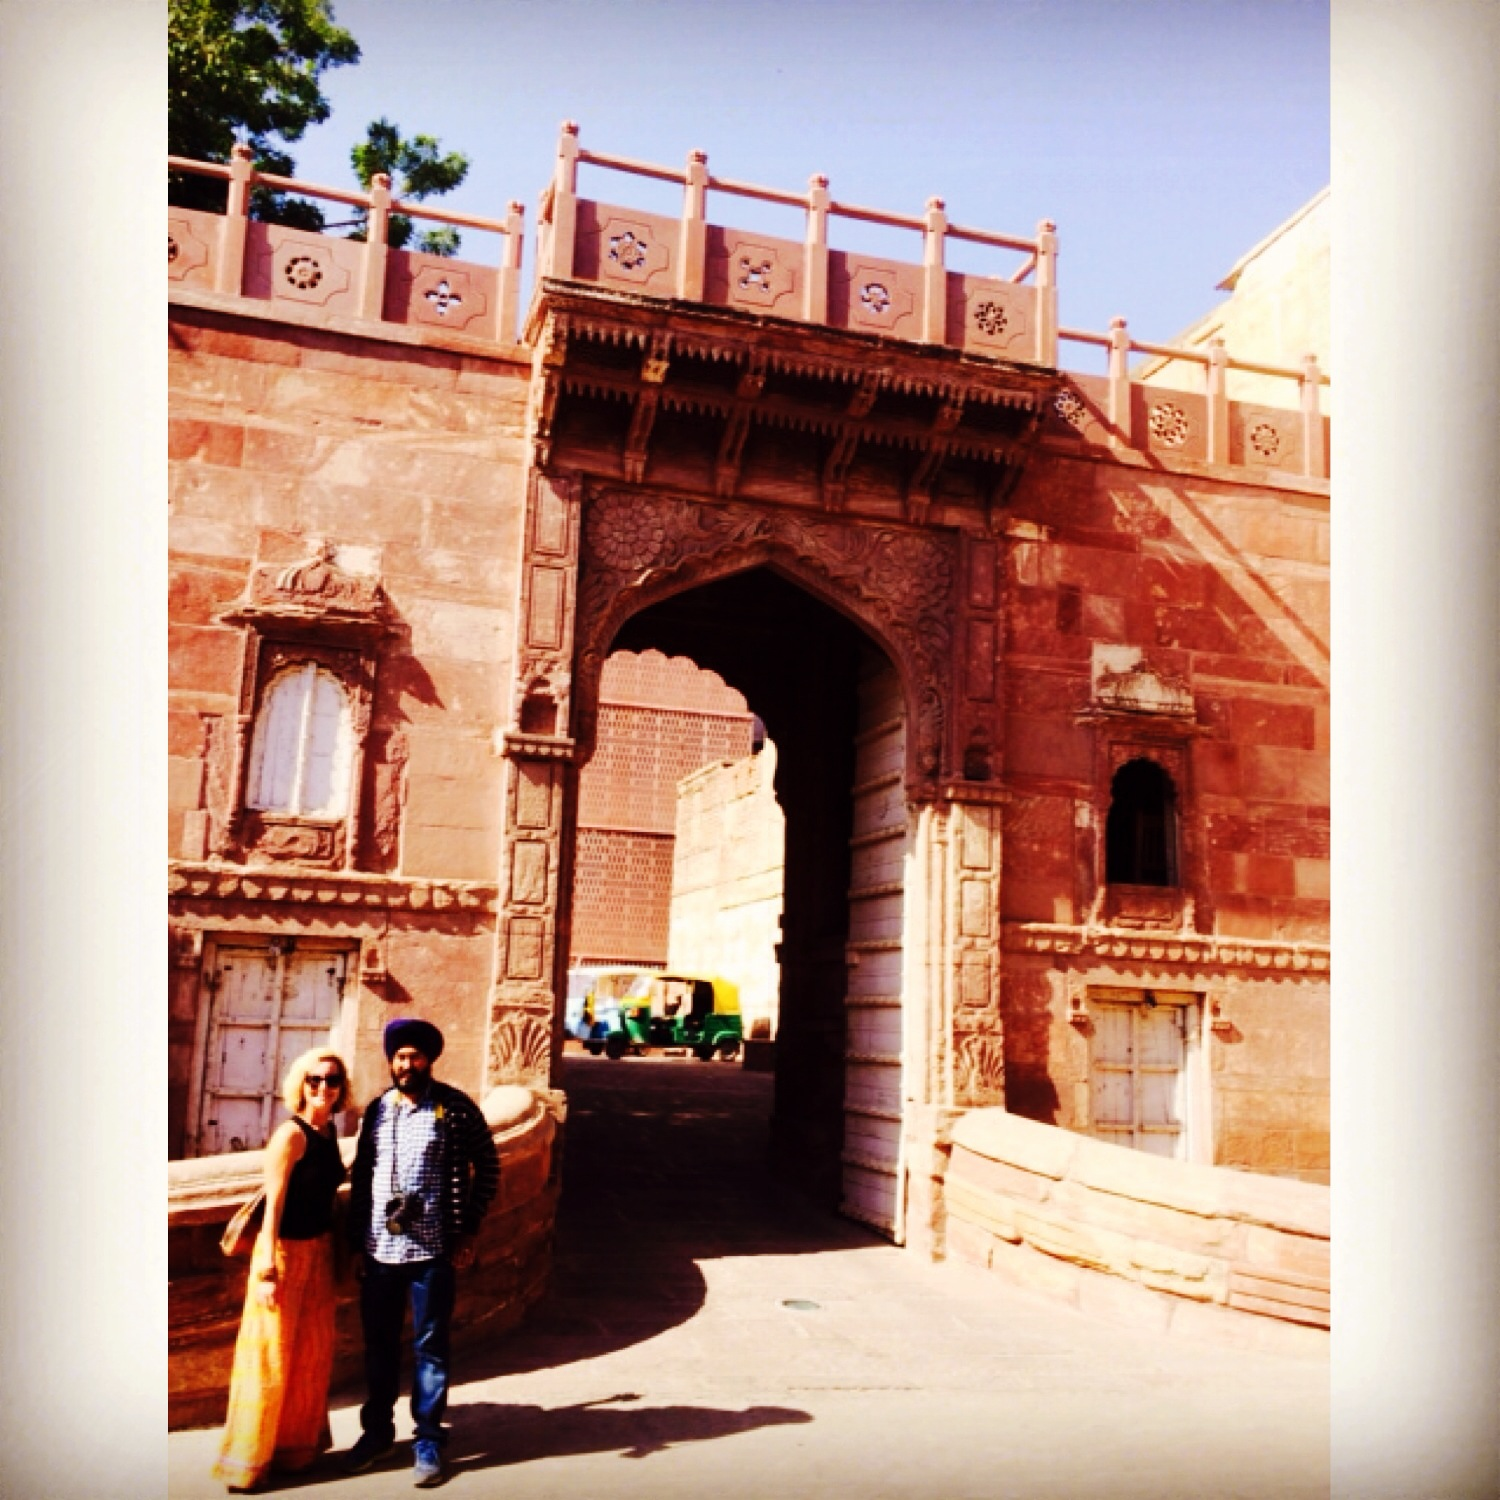 John's wife Suzanne and our good friend Gagan at the entrance to the RAAS hotel in Jodhpur